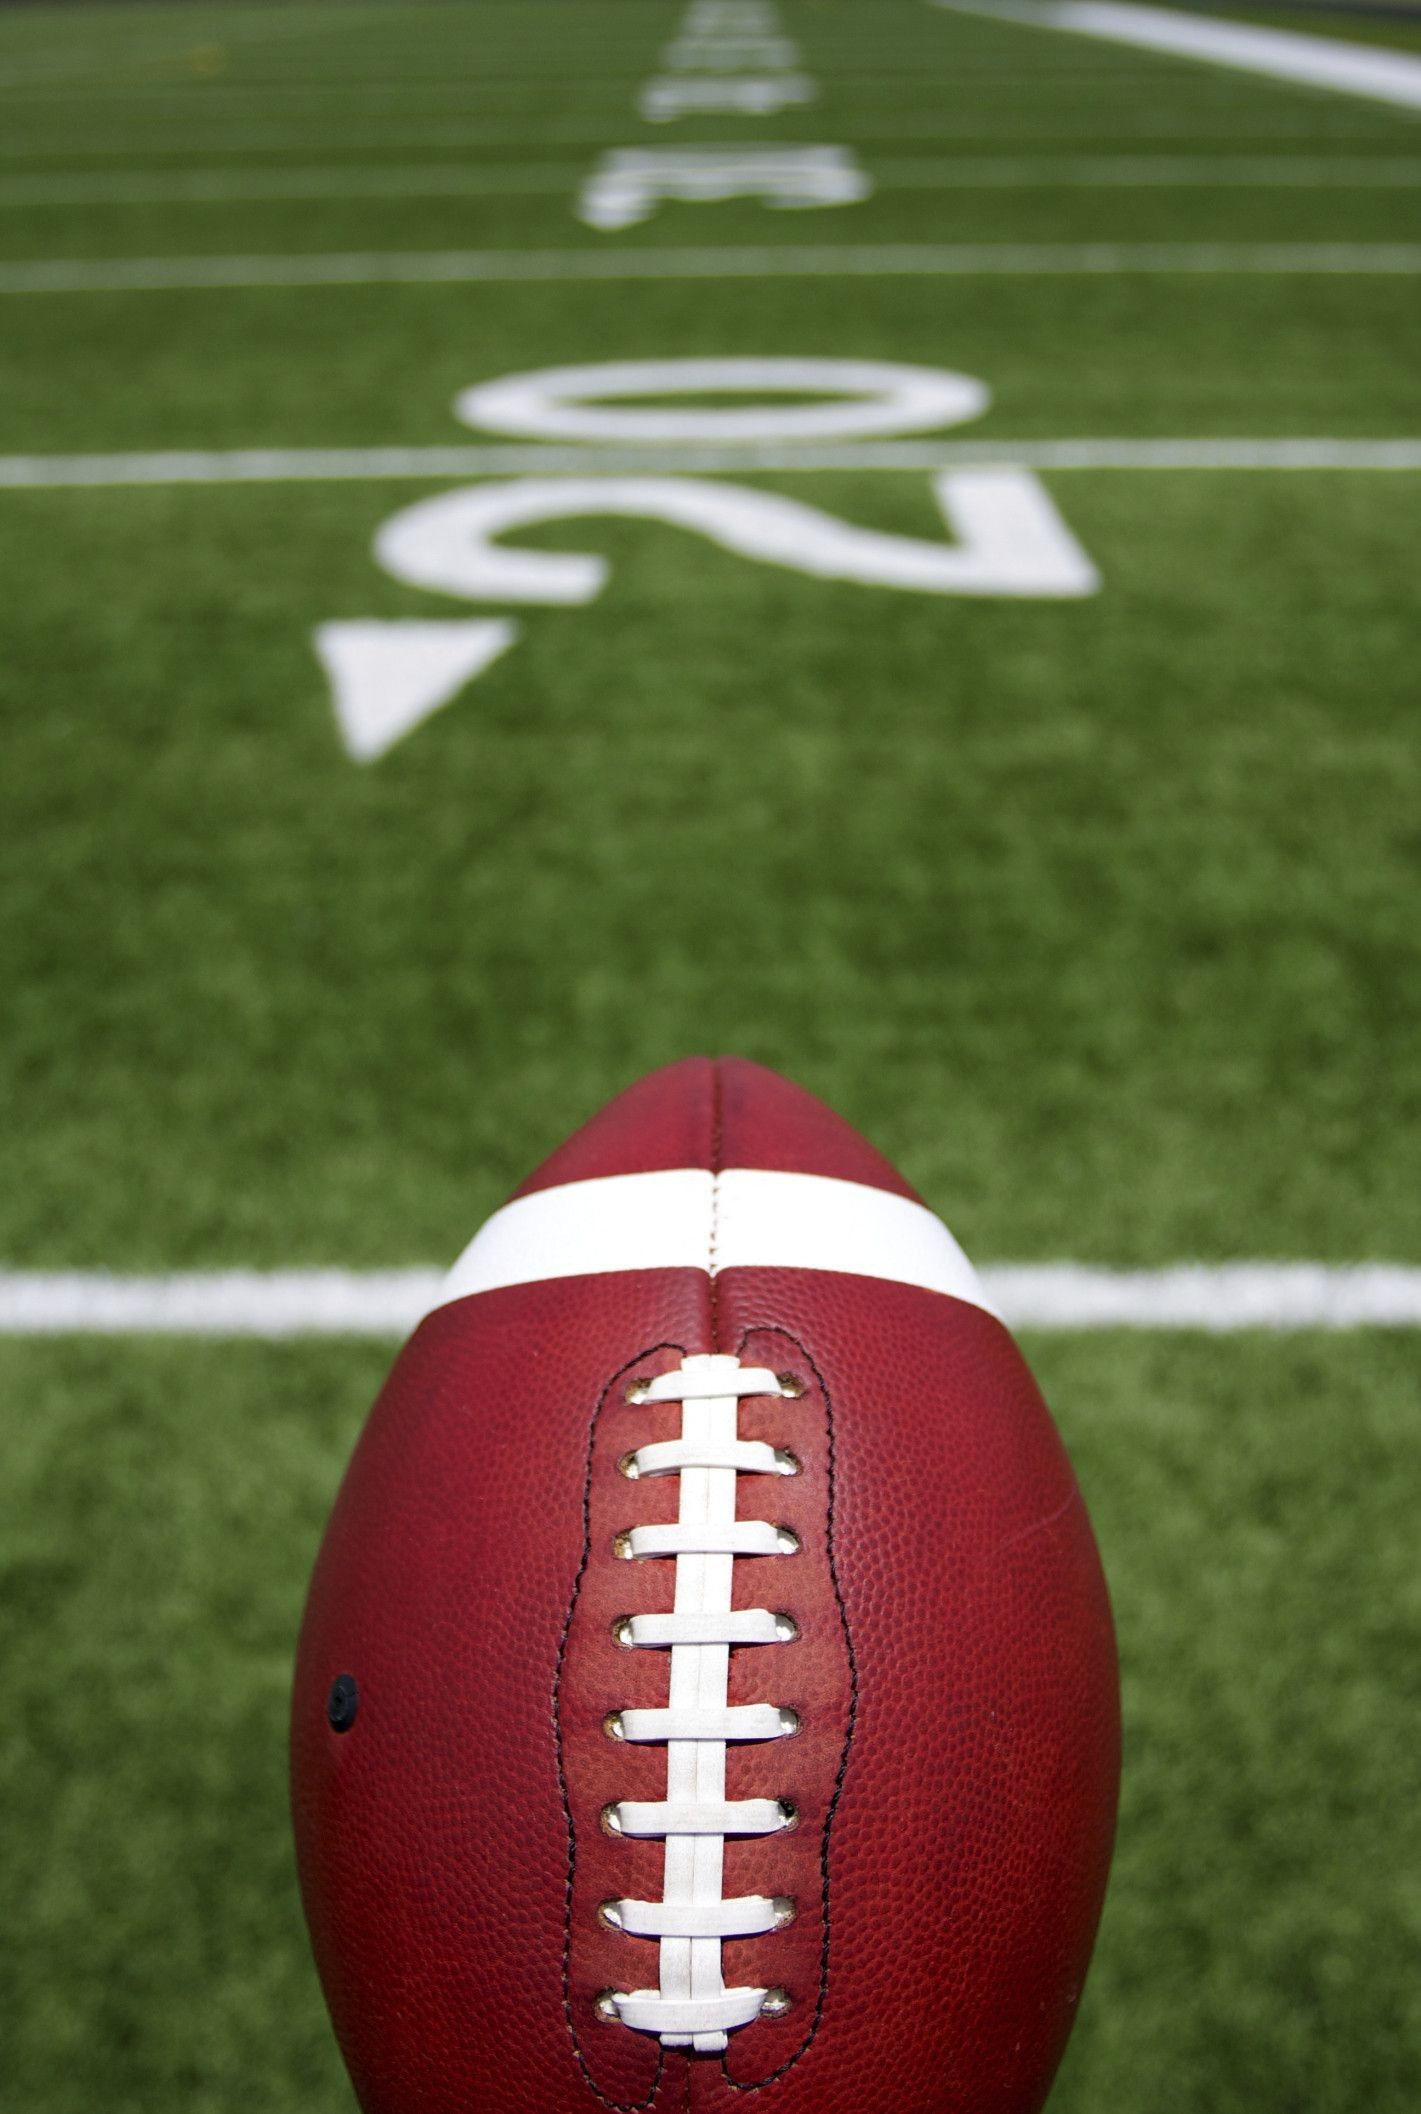 Football Field With Football Hd 1080P 12 HD Wallpapers #10036